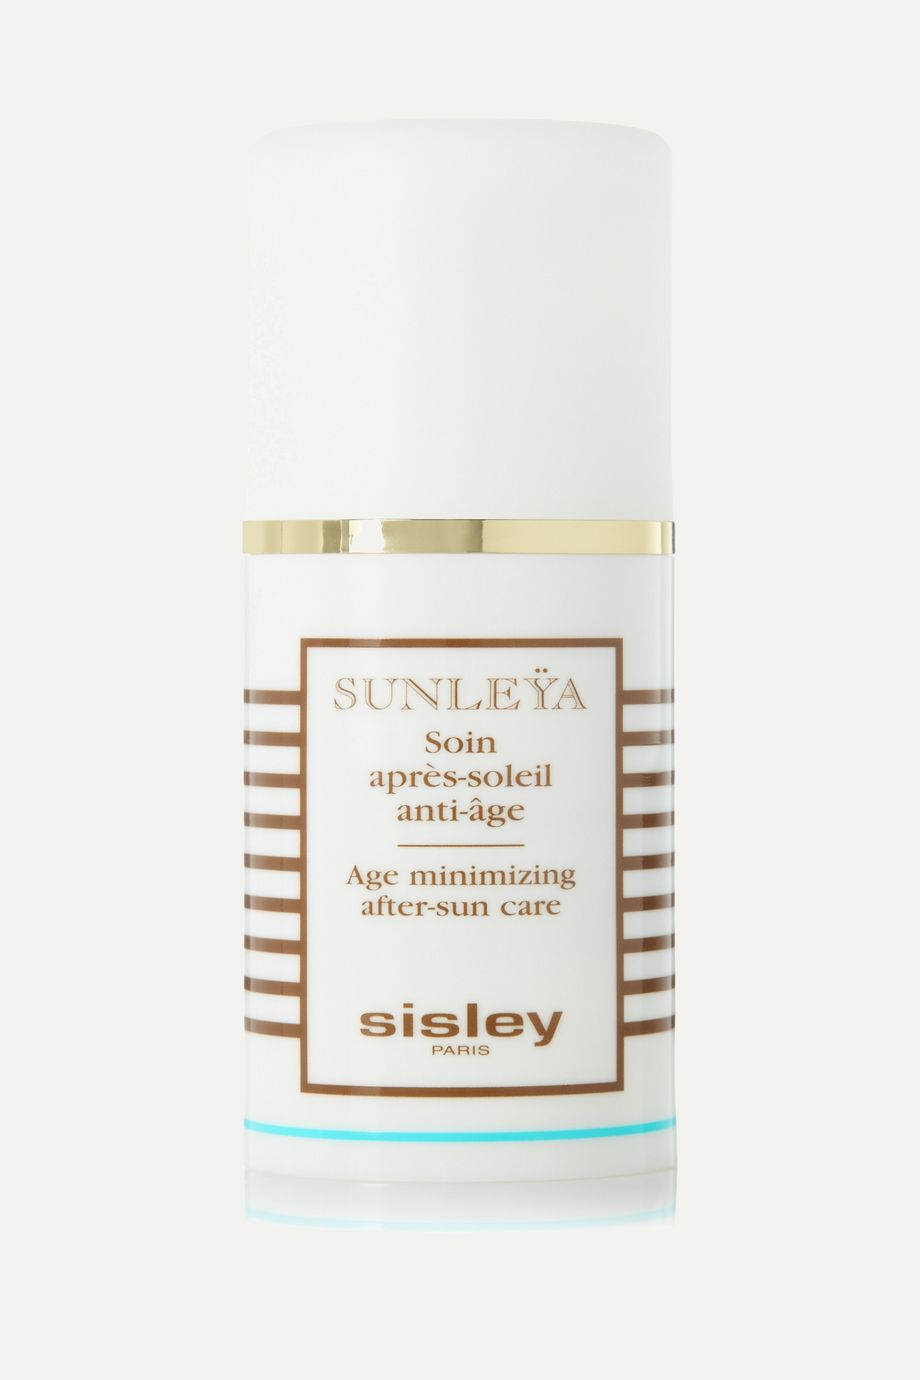 Sisley Sunleÿa Age Minimizing After Sun Care, 50ml